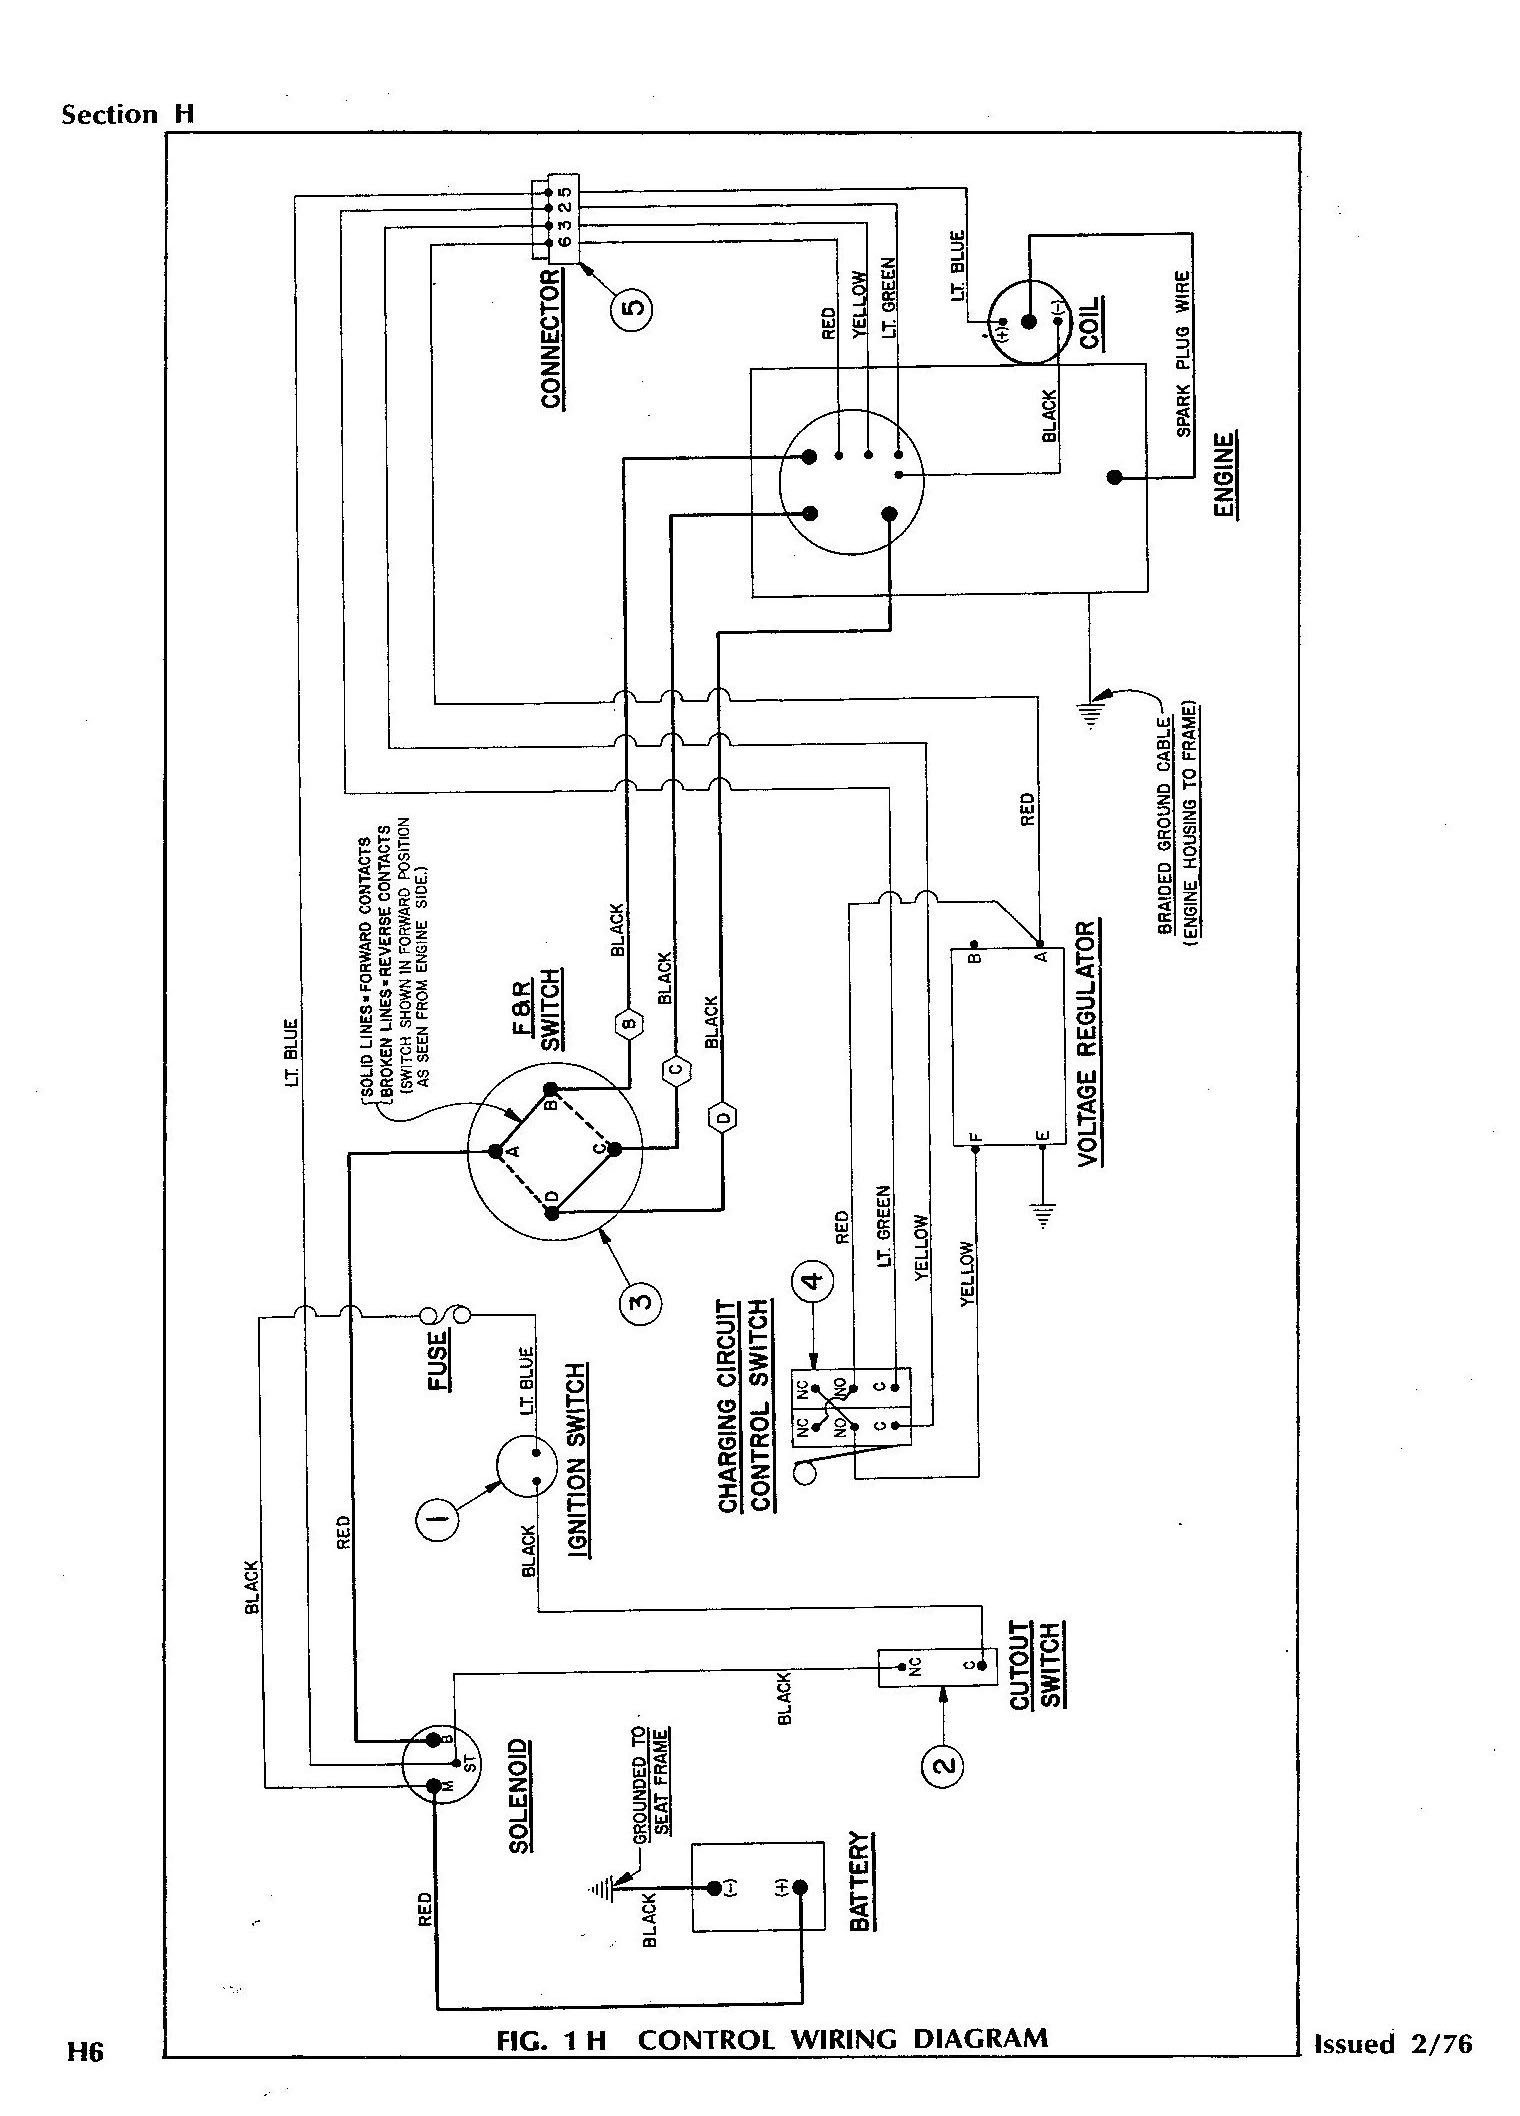 Vintagegolfcartparts Com 1998 Ezgo Golf Cart Wiring Diagram 1976 Ezgo  Wiring Diagram